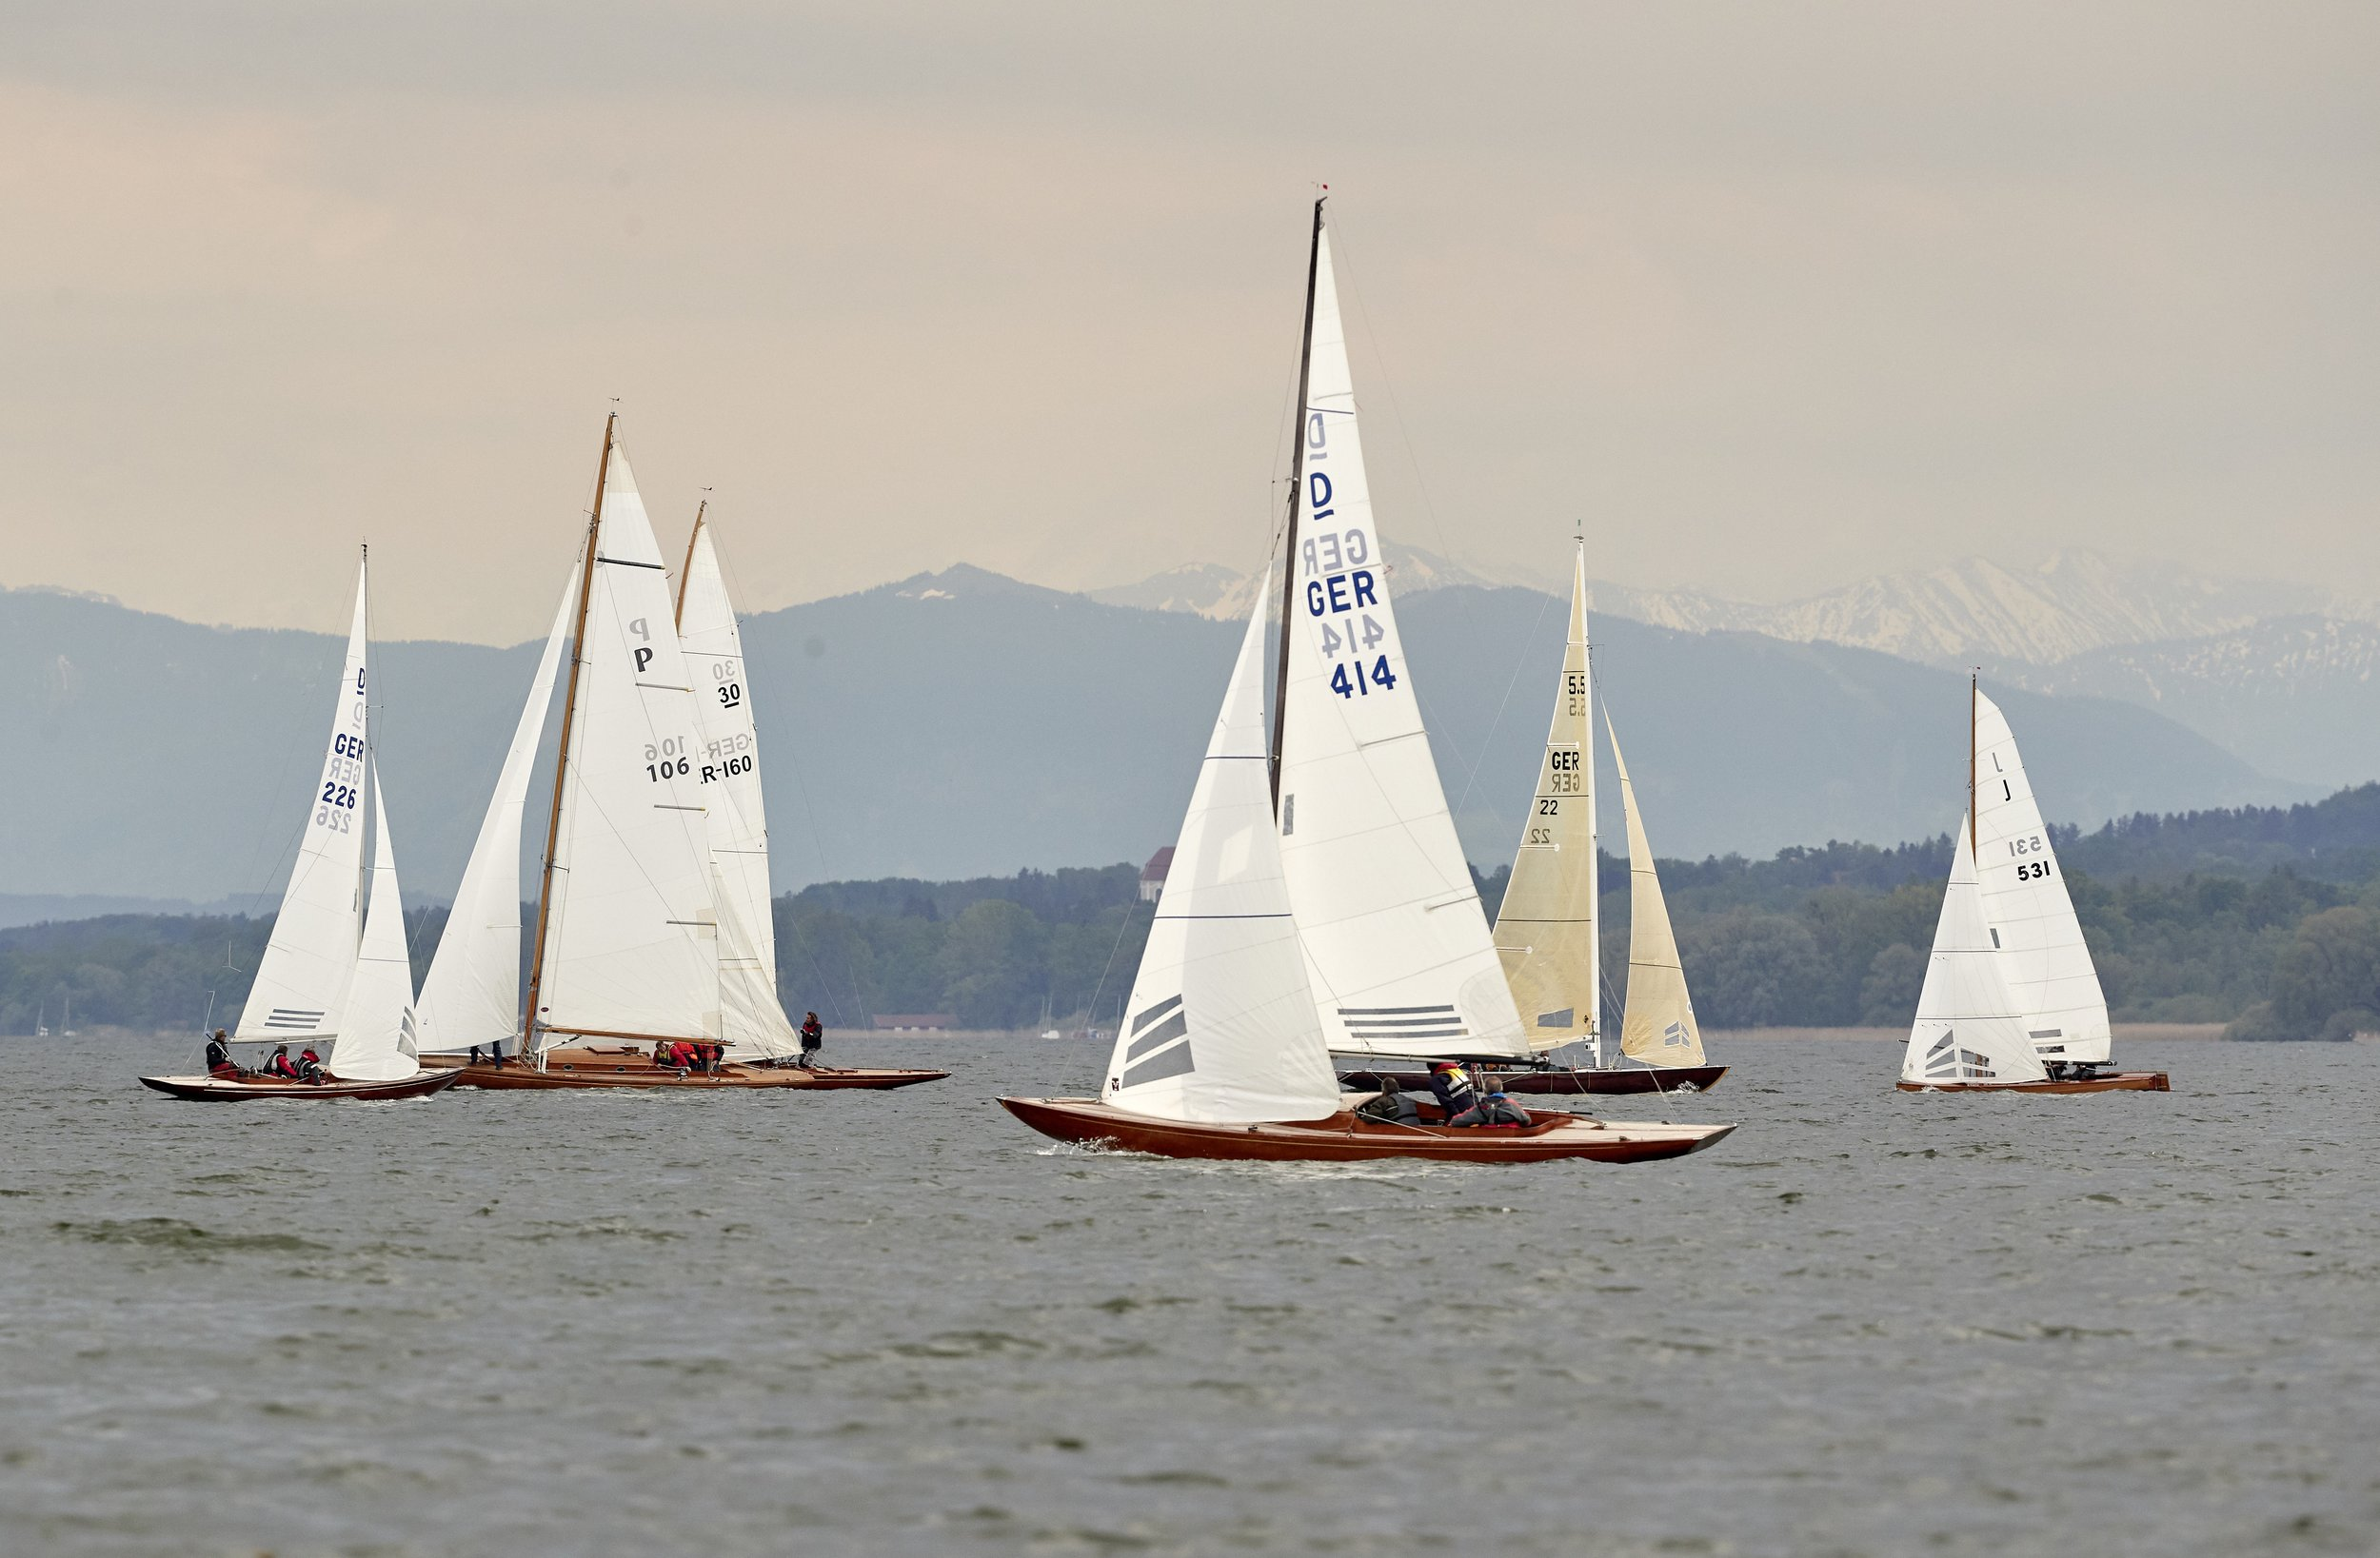 0519_ammersee_classic_118.jpeg